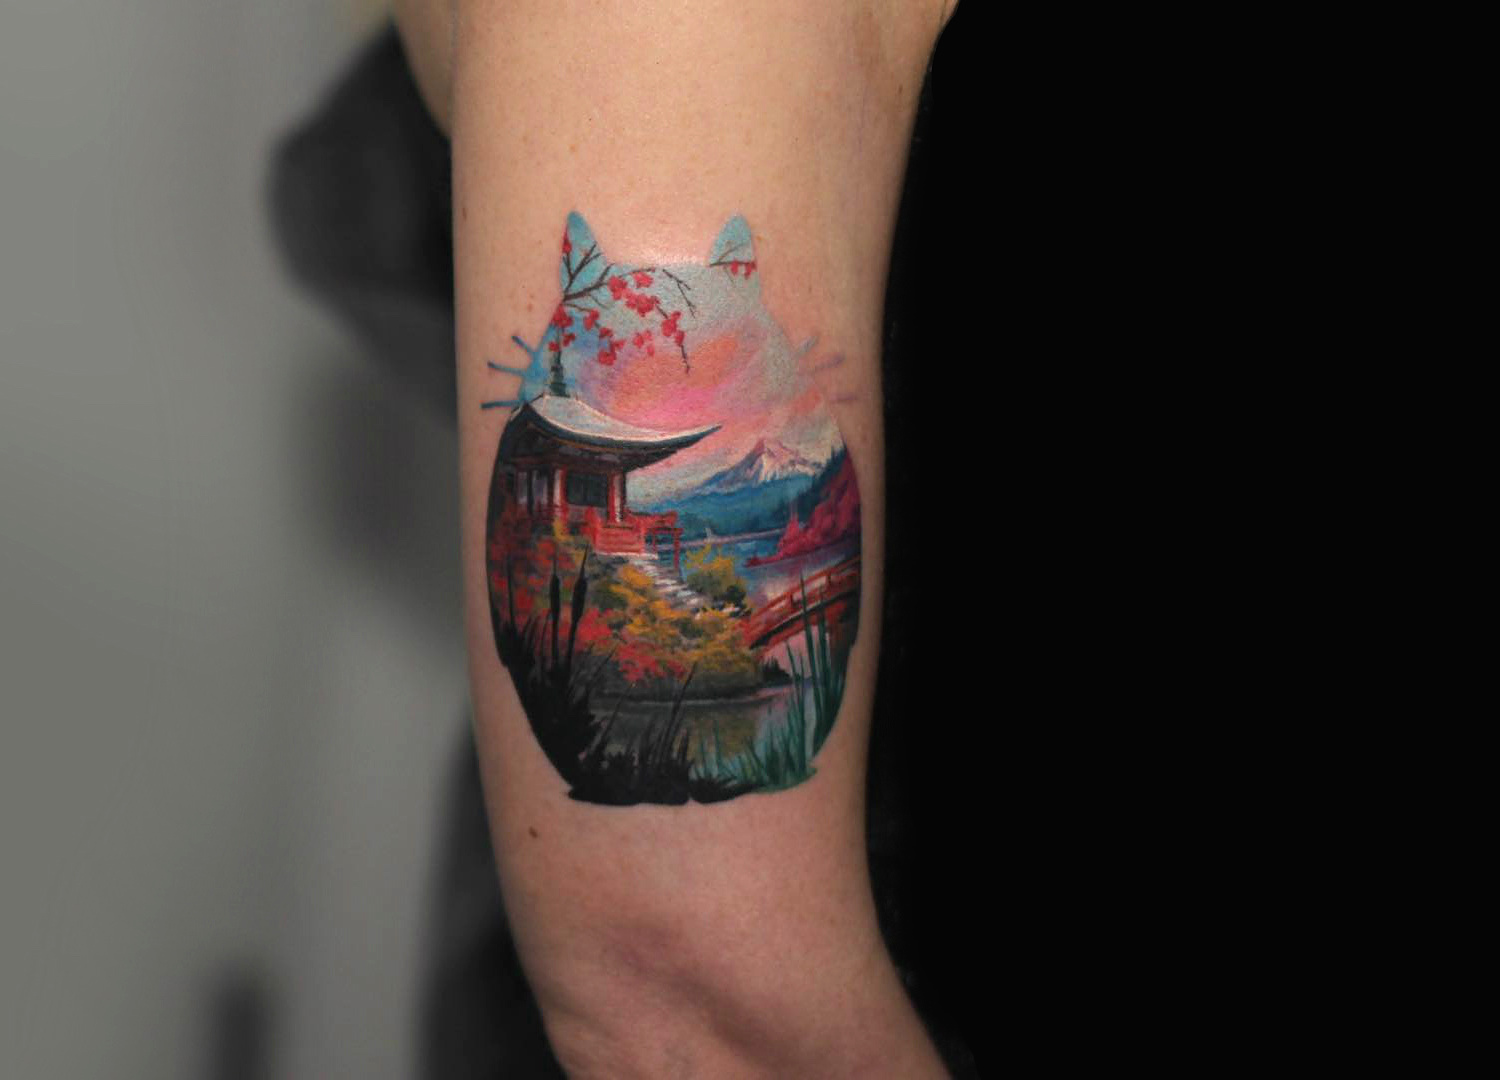 Totoro tattoo by NYC artist Royal Jafarov